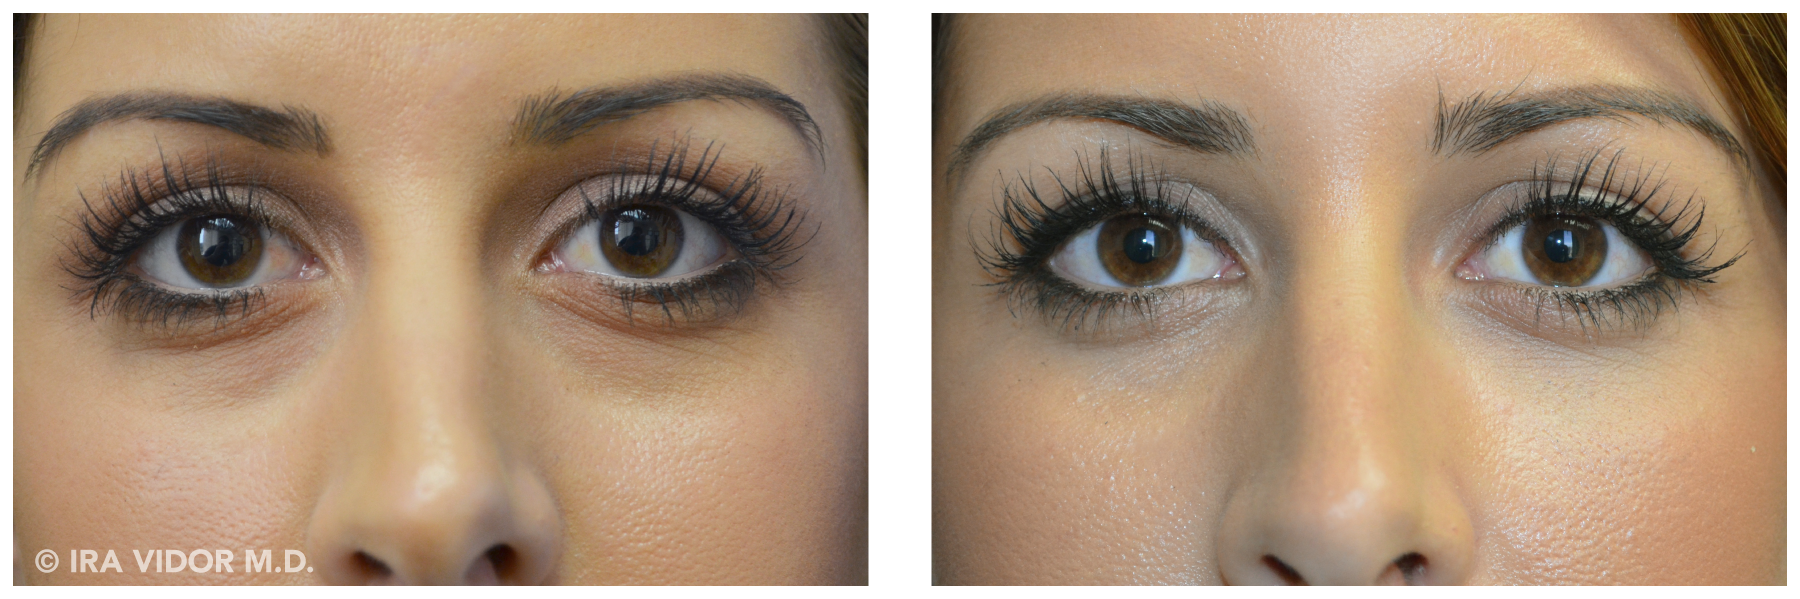 Image set 1. – Pre and post injection – tear trough filler